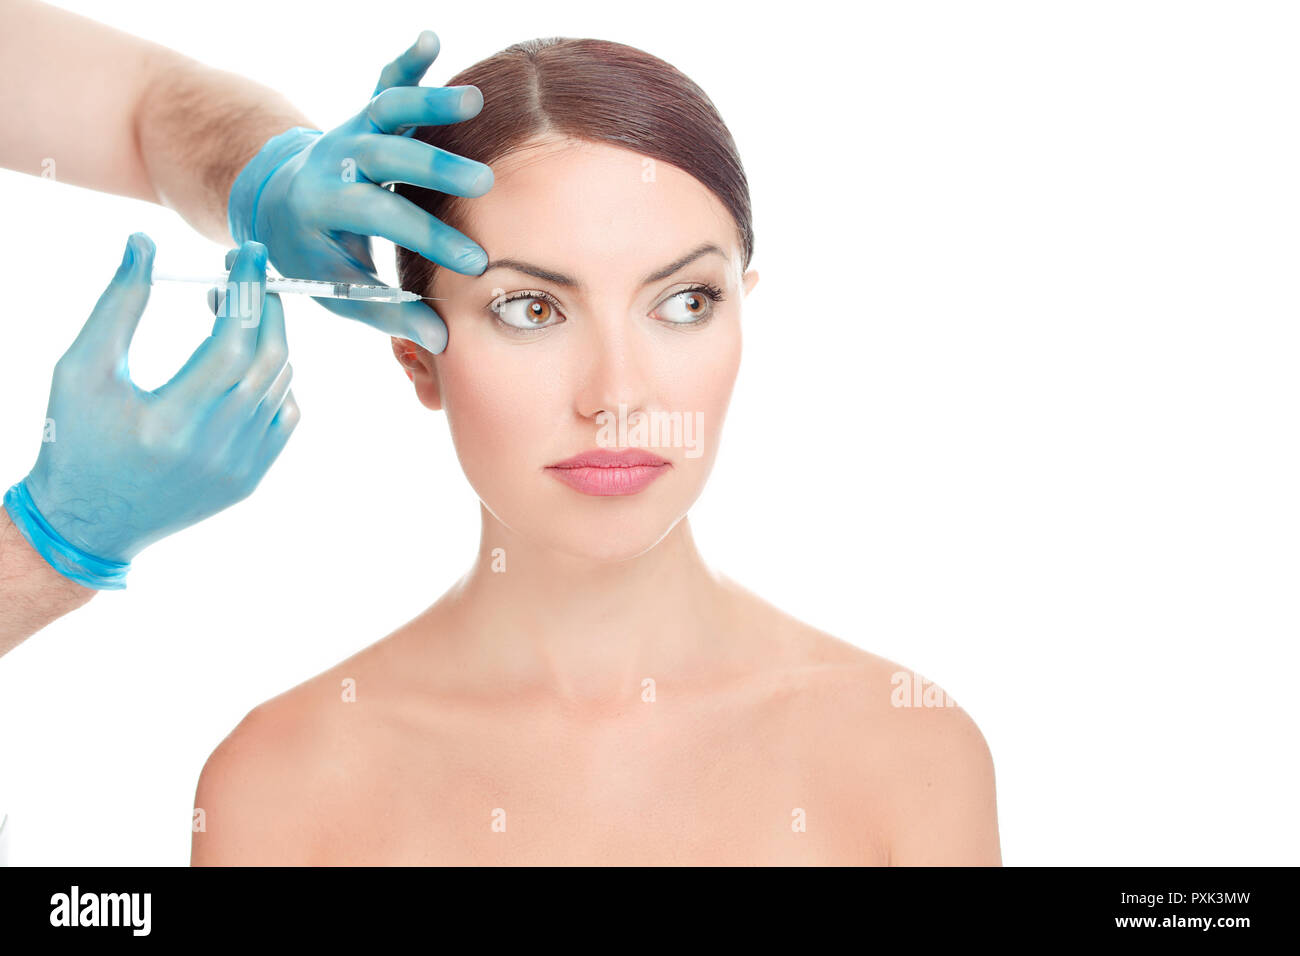 Beautiful female face close-up ready for anti aging serum shot in in face - Stock Image